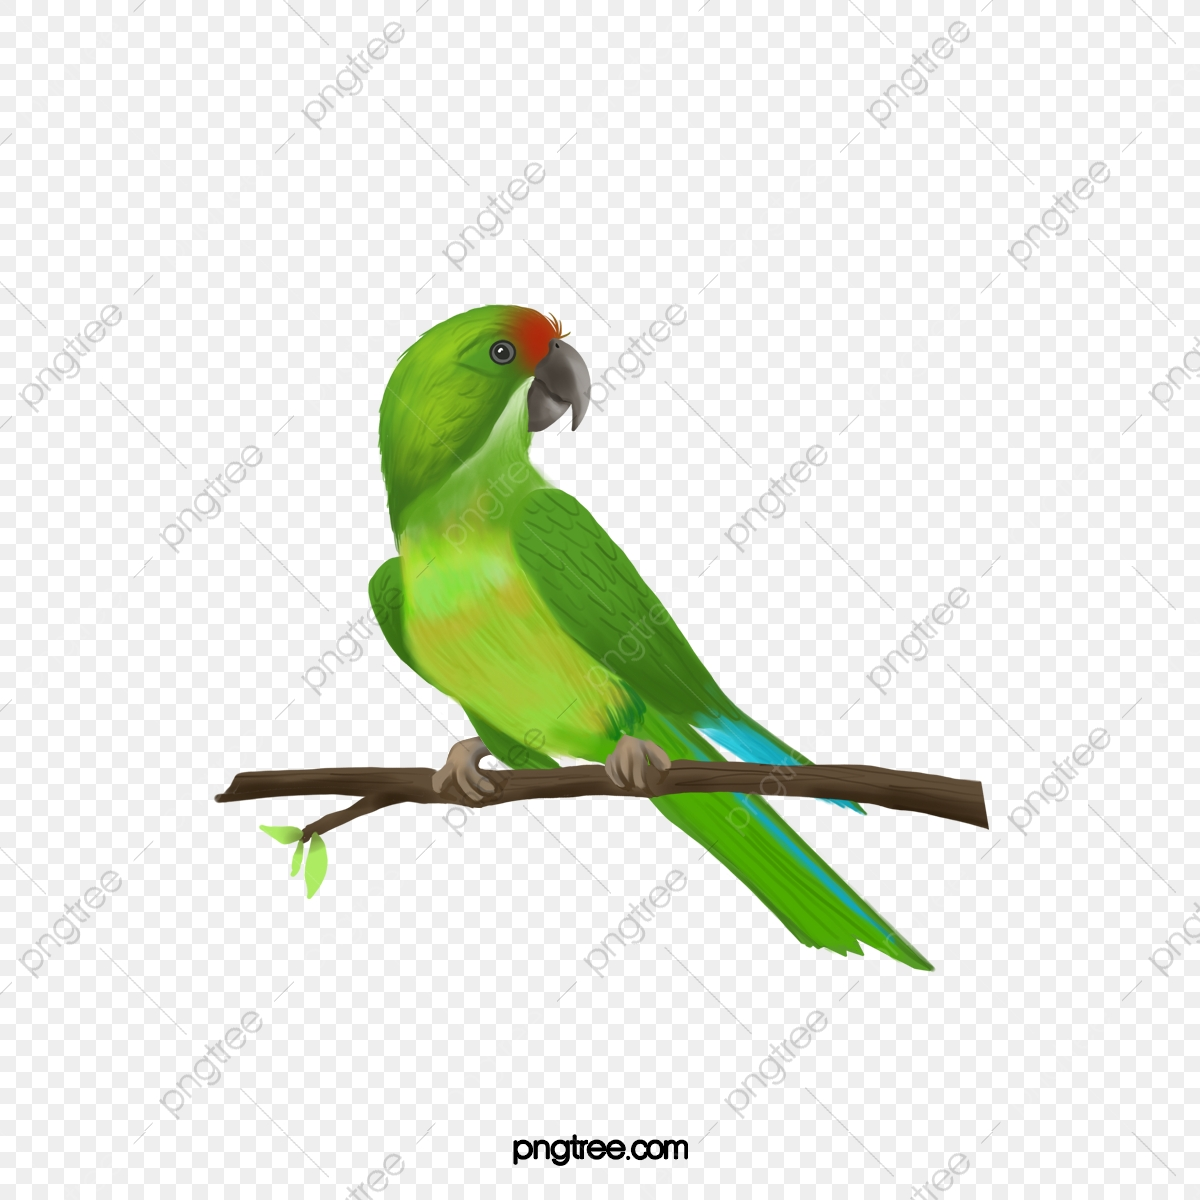 Green Parrot Pictures, Parrot Clipart, Green Parrot, Birds PNG.